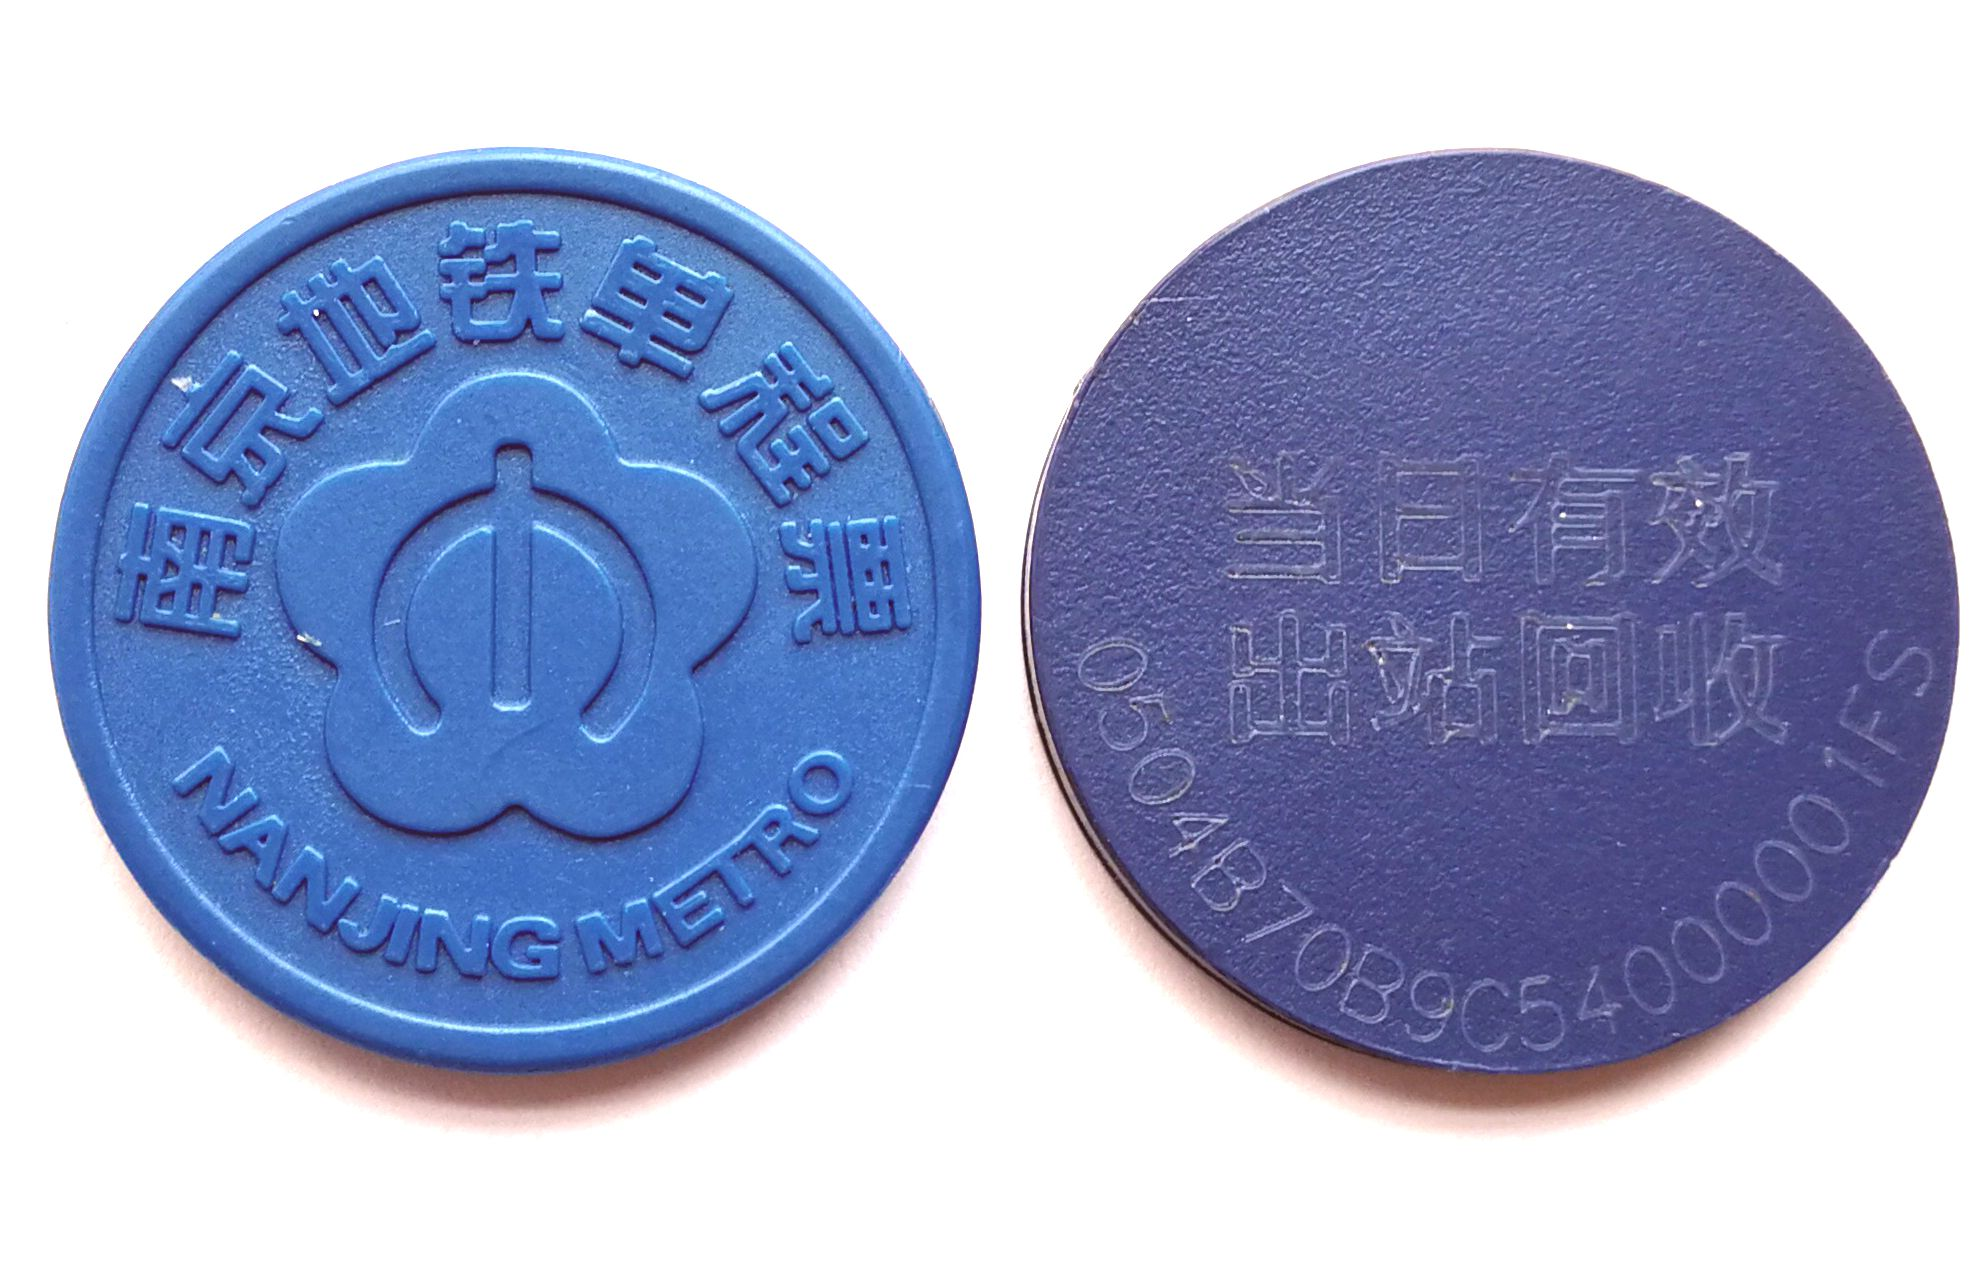 T5350, China Nanjing City, Metro Token (Subway Ticket), Single 2018, Invalid